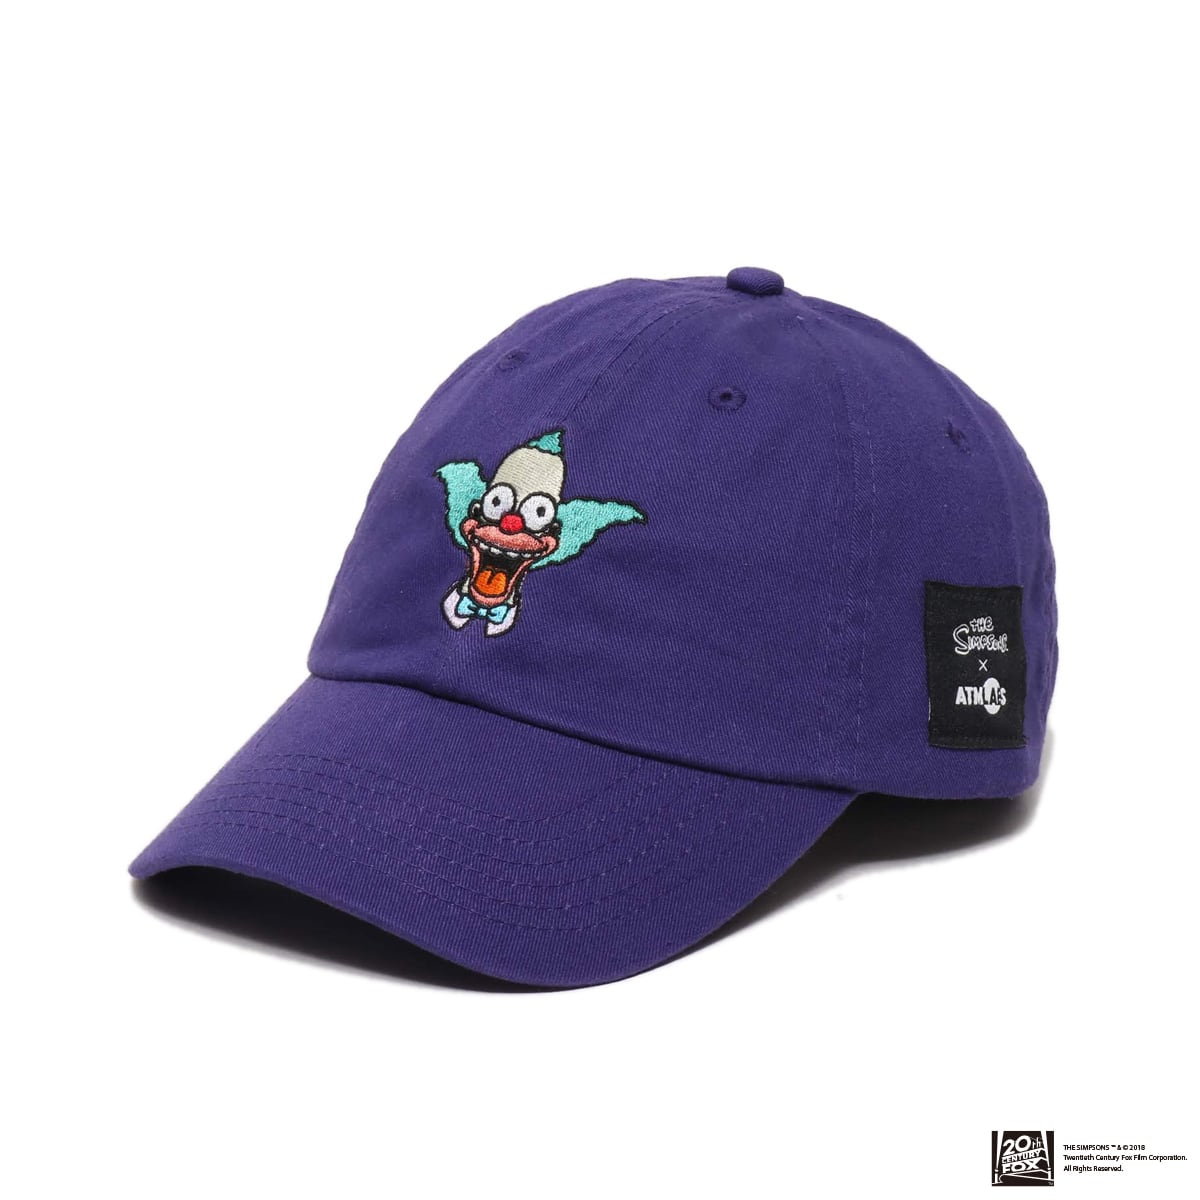 THE SIMPSONS x ATMOS LAB KRUSTY EMBROIDERY 6 PANEL CAP  PURPLE 18FW-I_photo_large